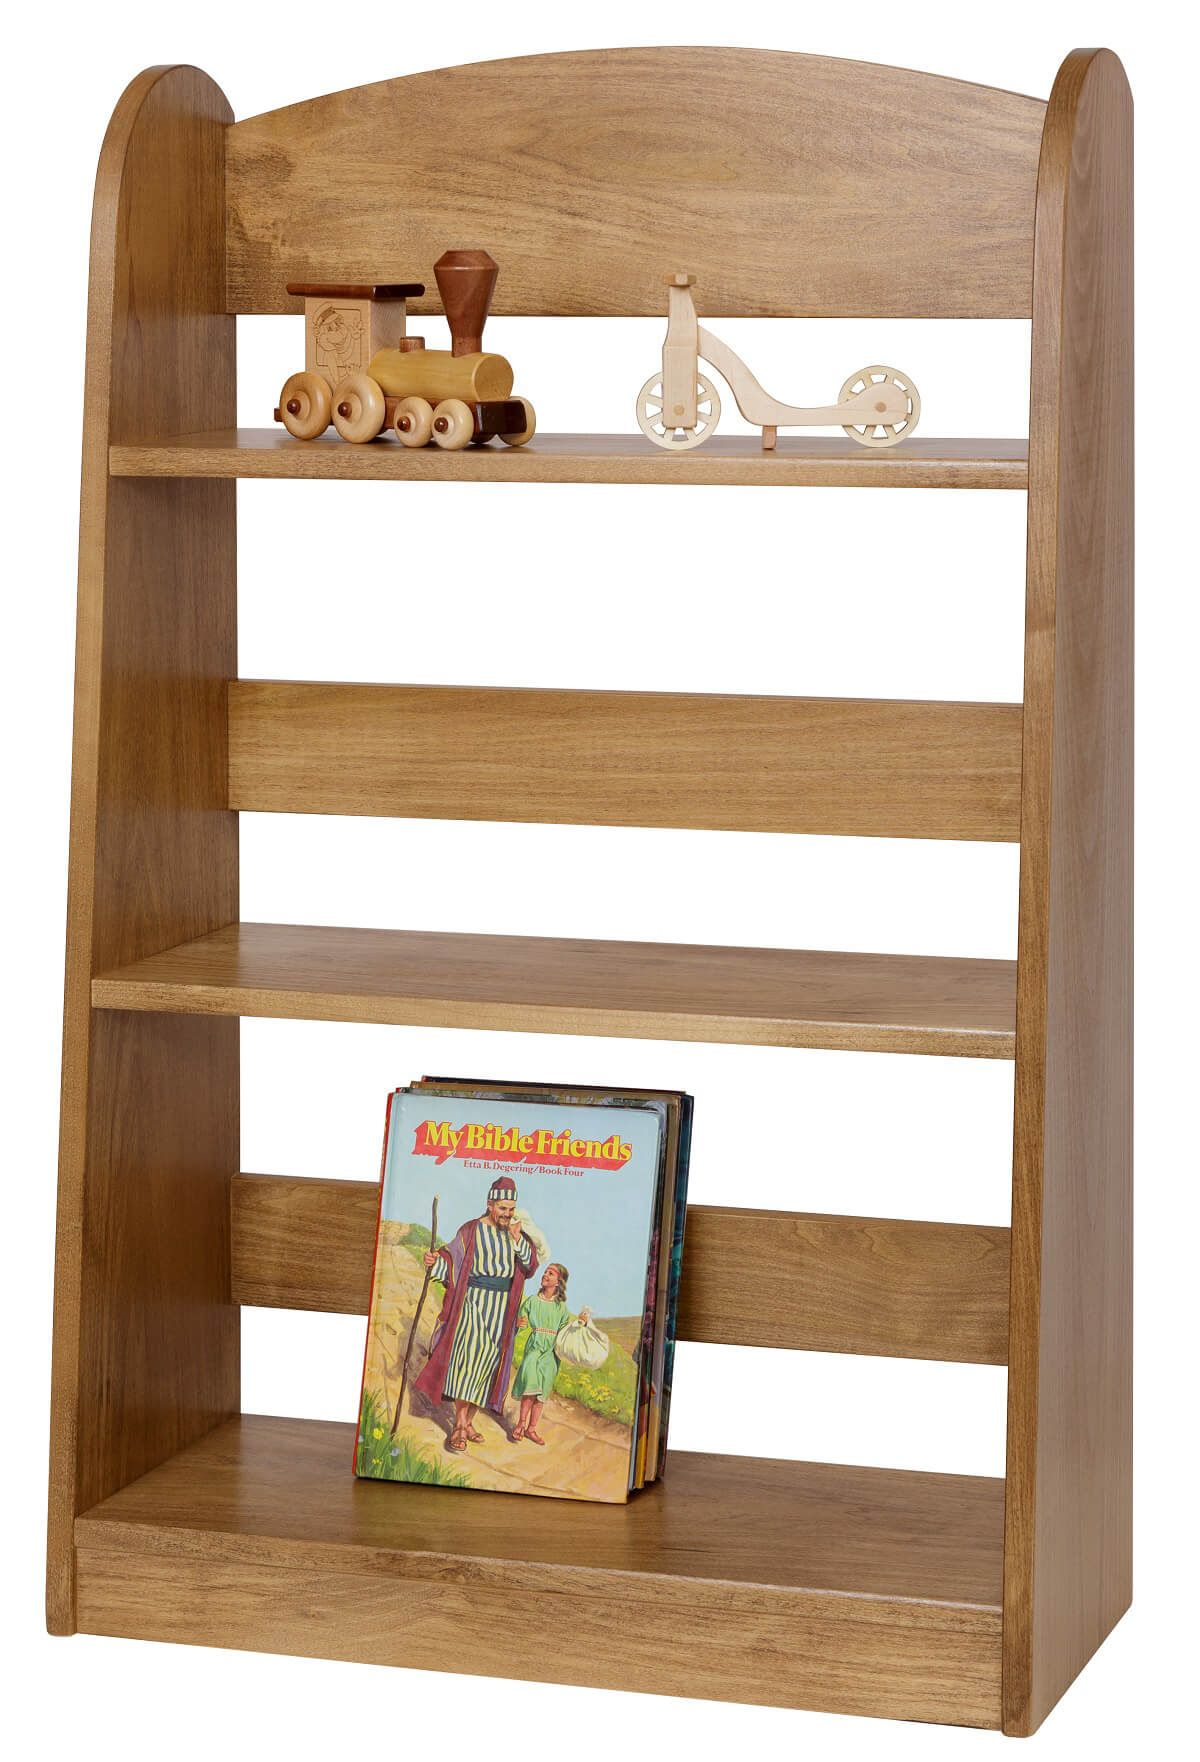 Stained Wooden Bookcase for Kids